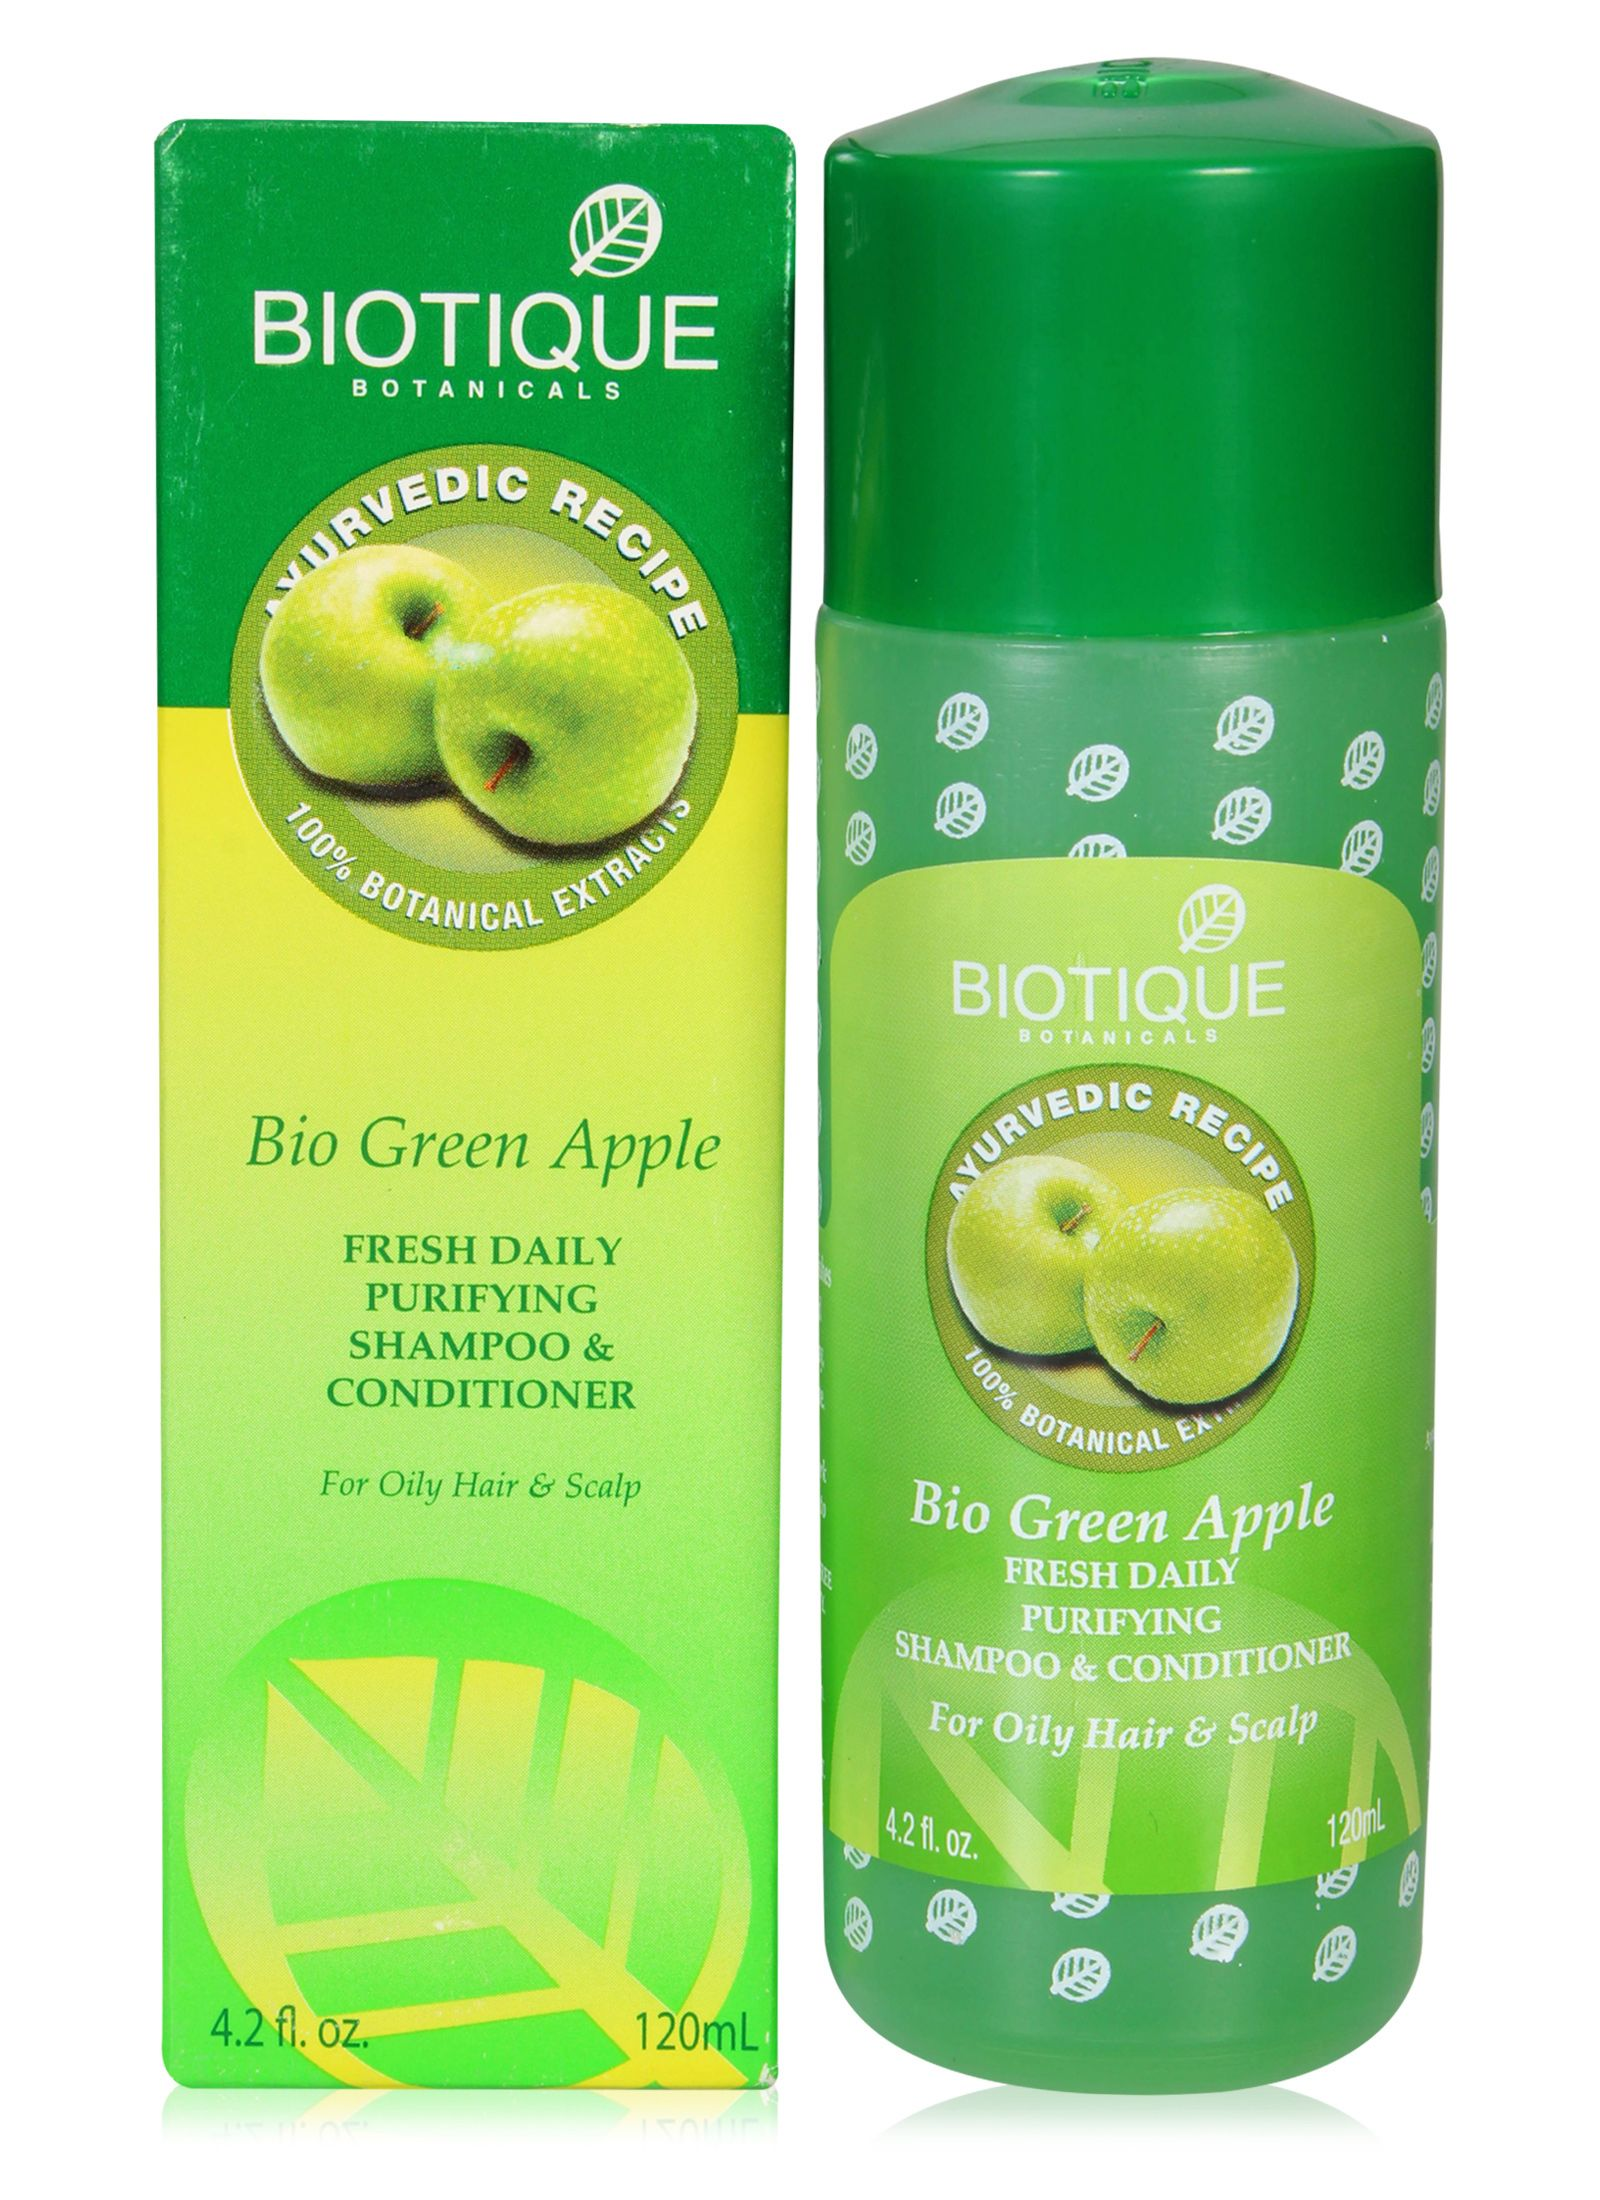 Biotique Green Apple Shampoo Image